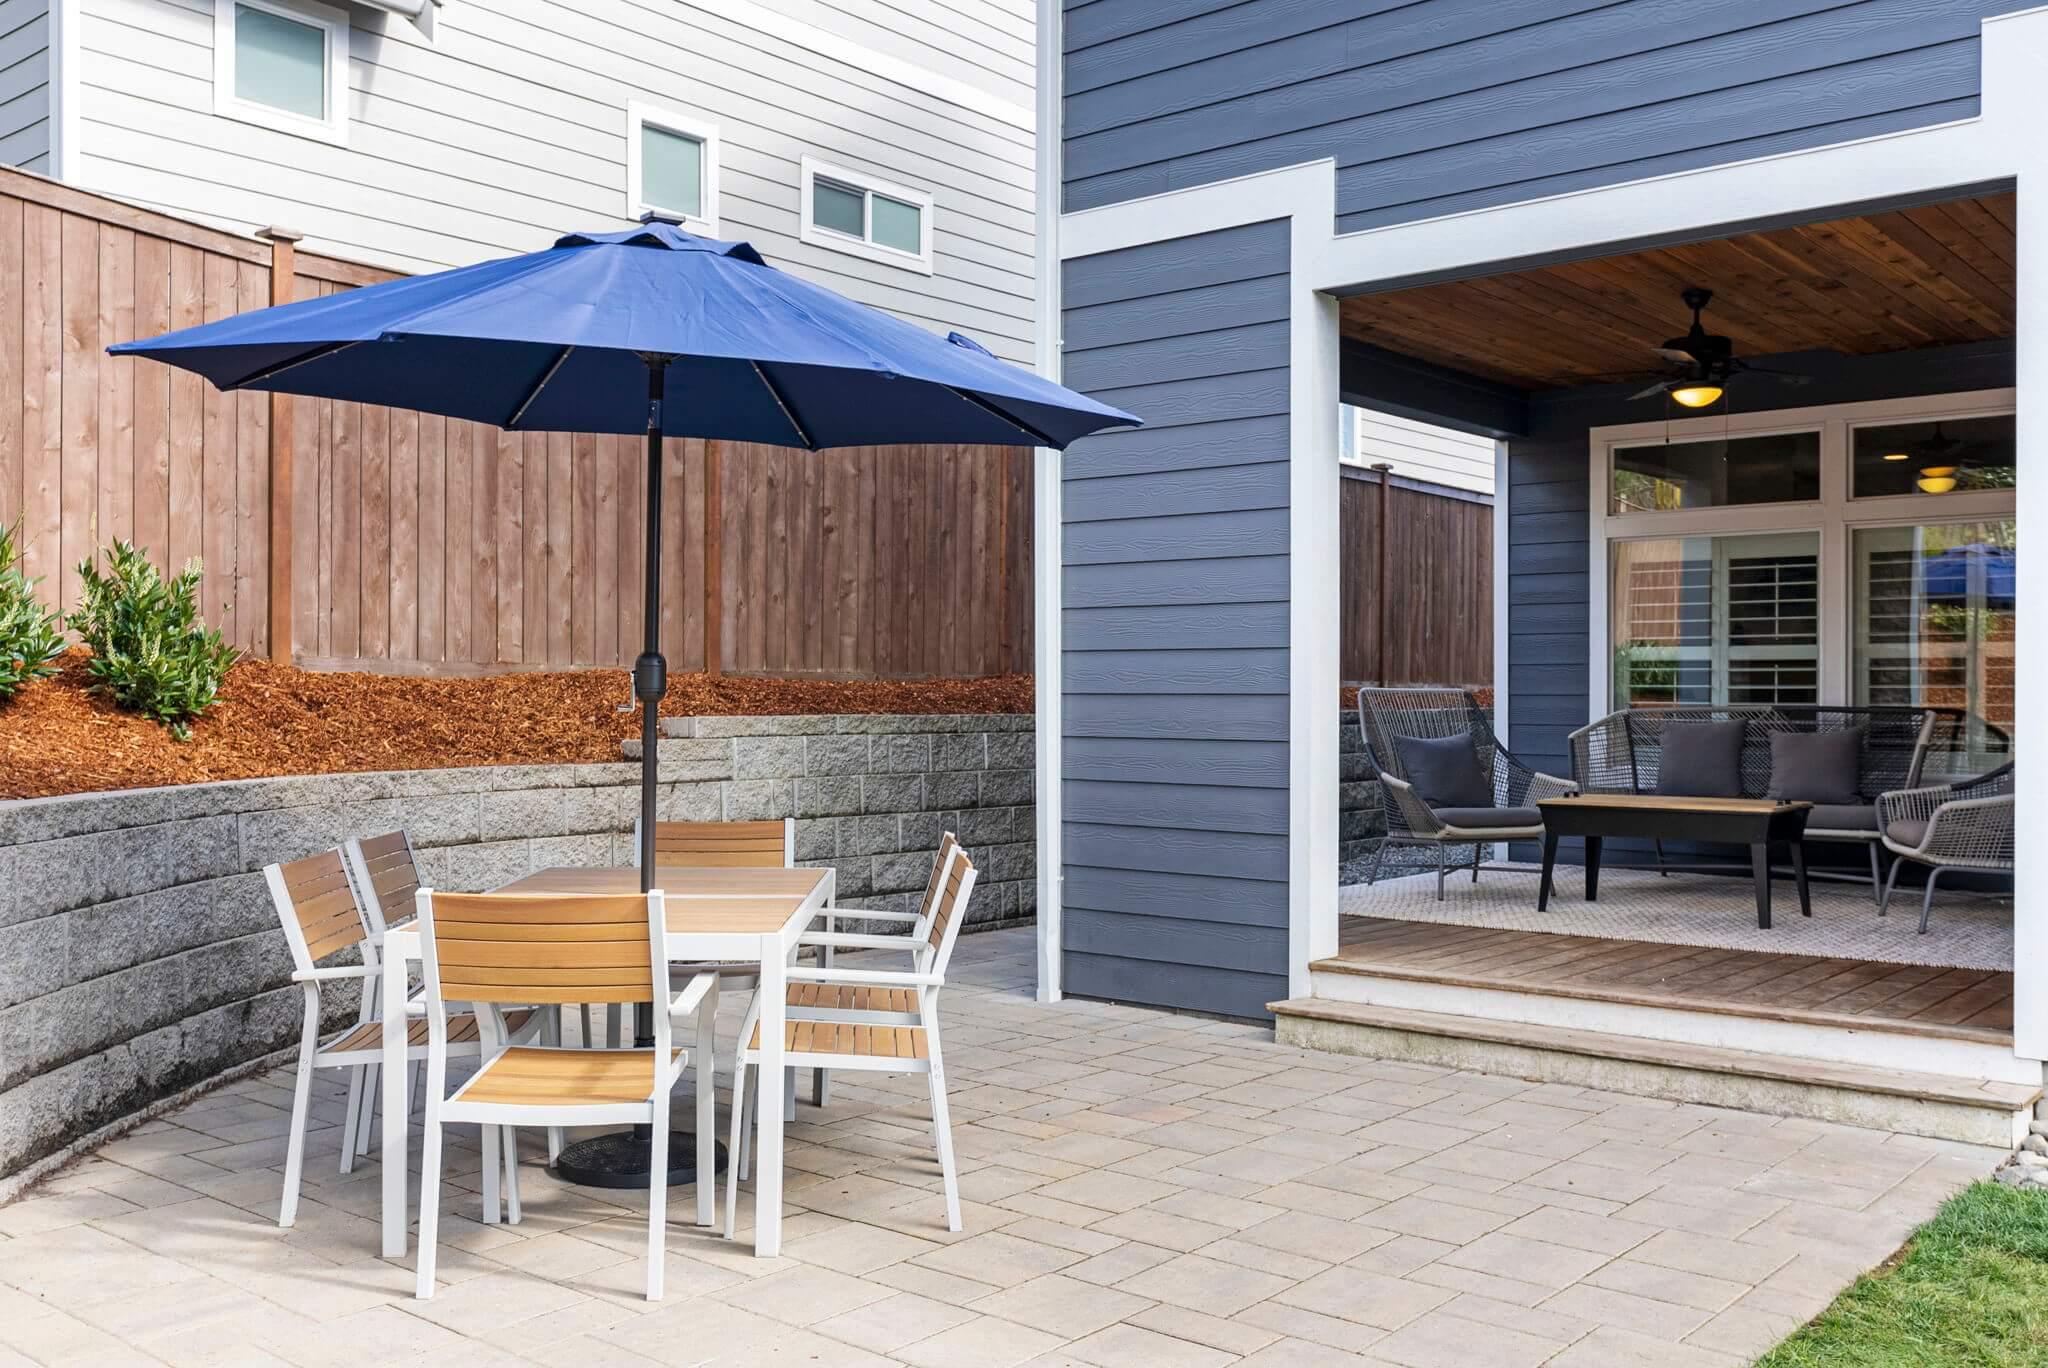 Patio offers great space for outdoor entertaining